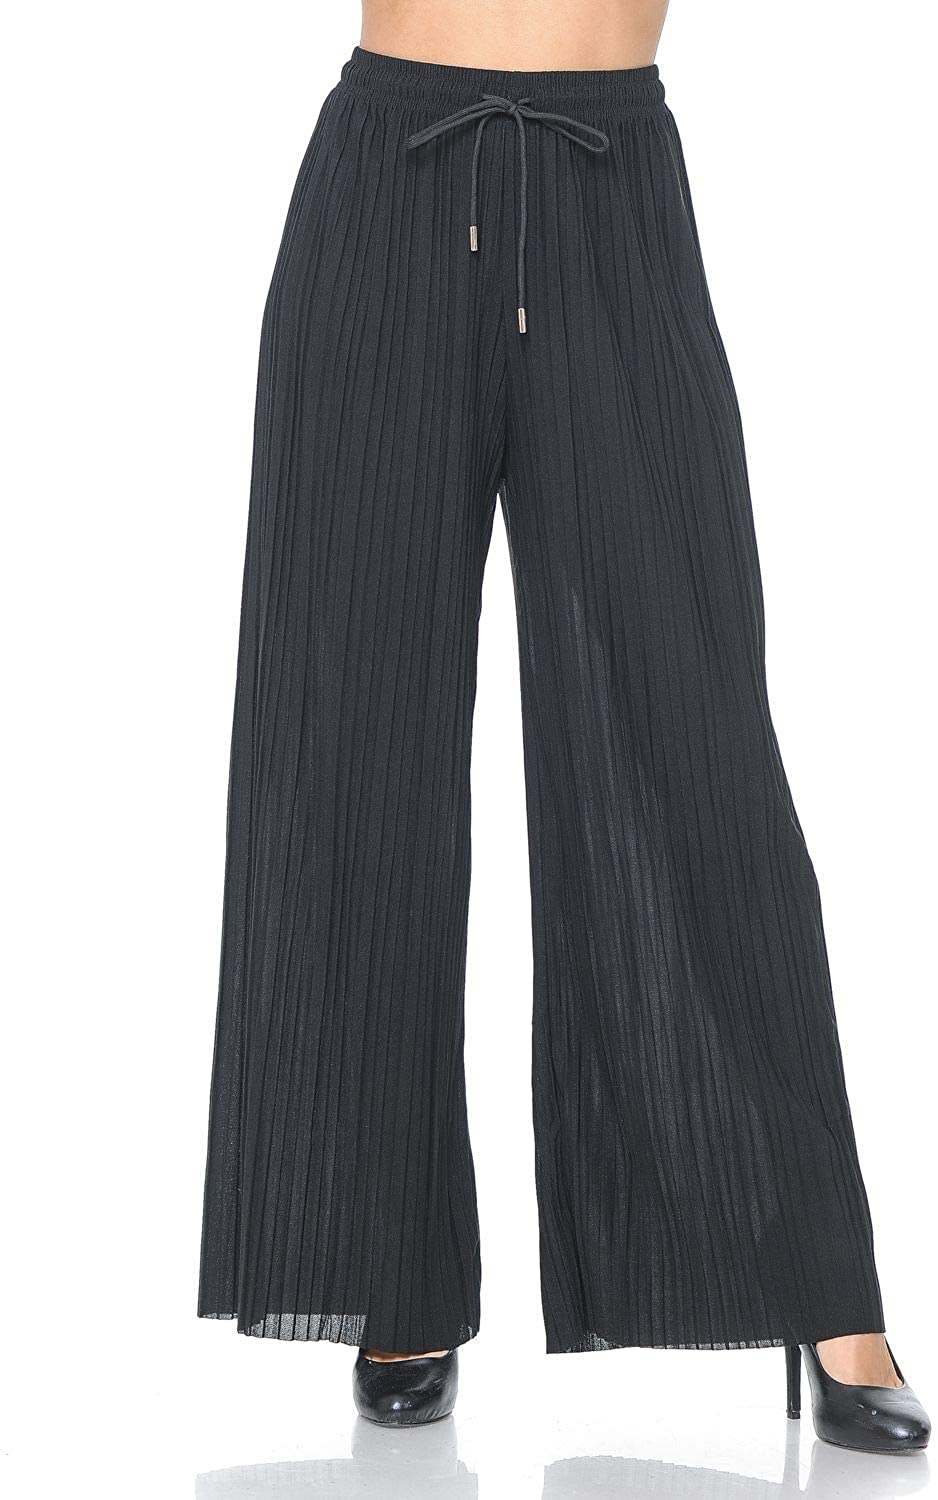 Auliné Collection Womens Solid Waistband Long Pleated Chiffon Palazzo Pants